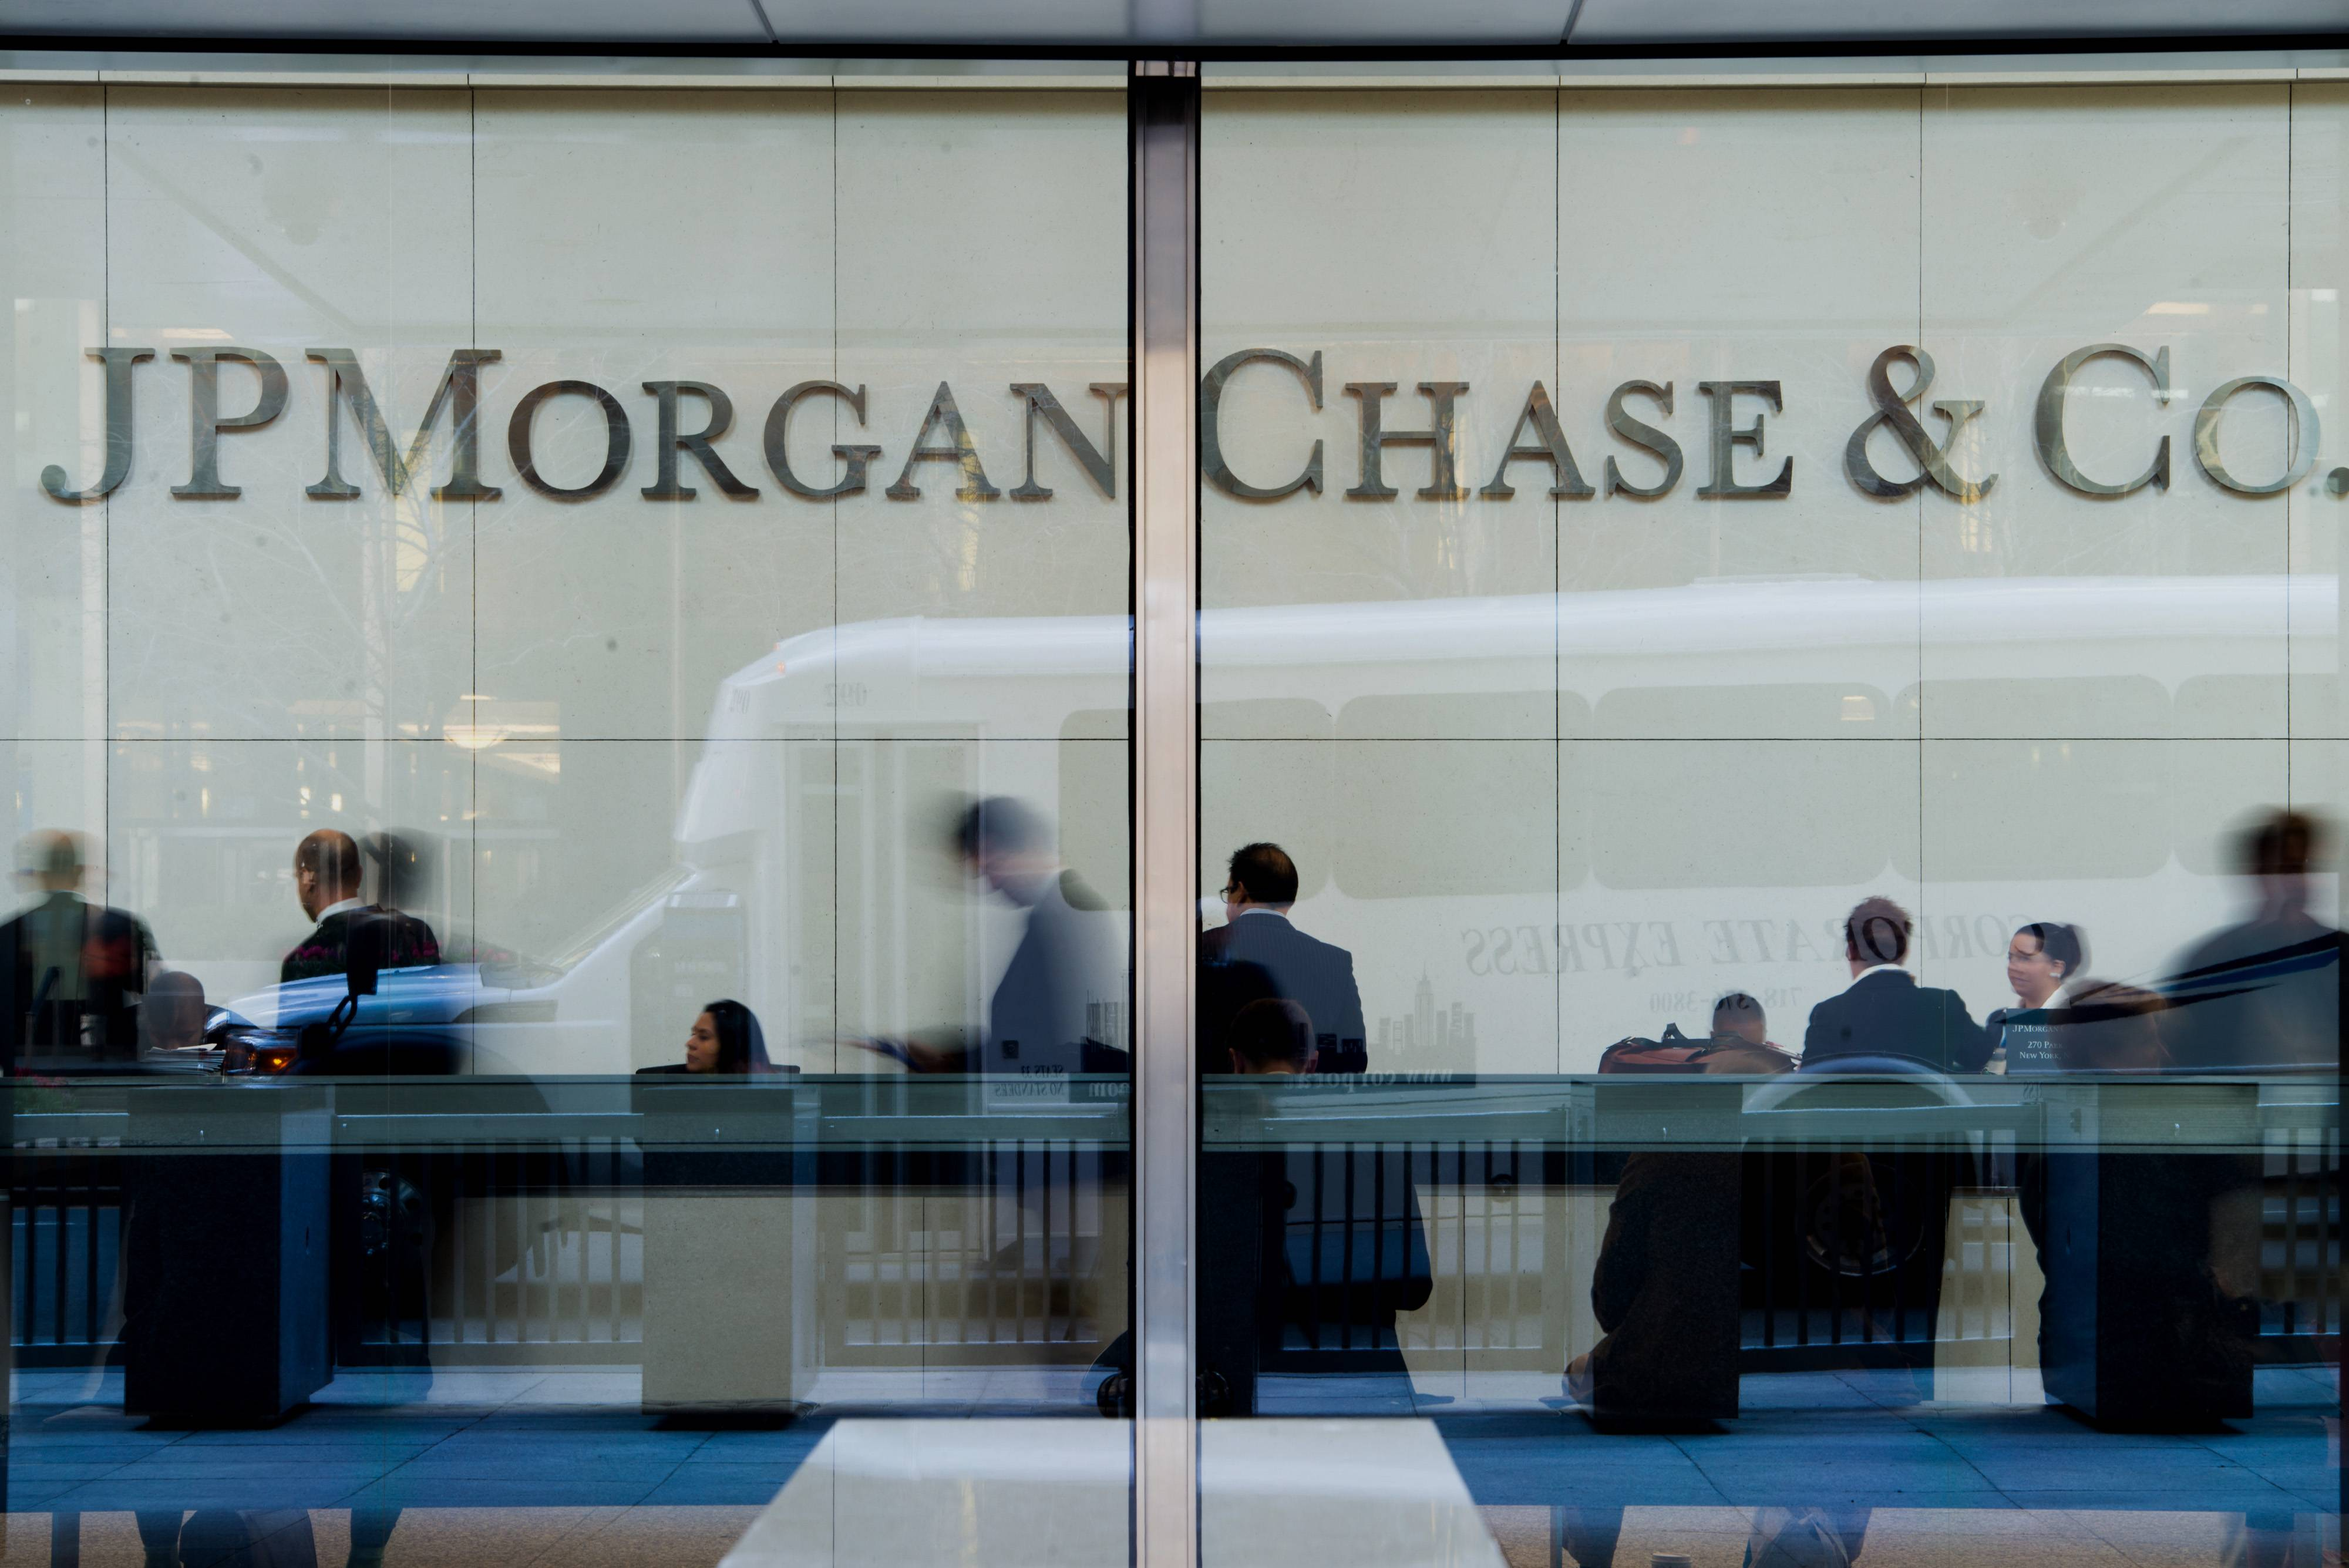 JPMorgan Chase, the country's biggest bank by assets, says its first-quarter earnings fell.